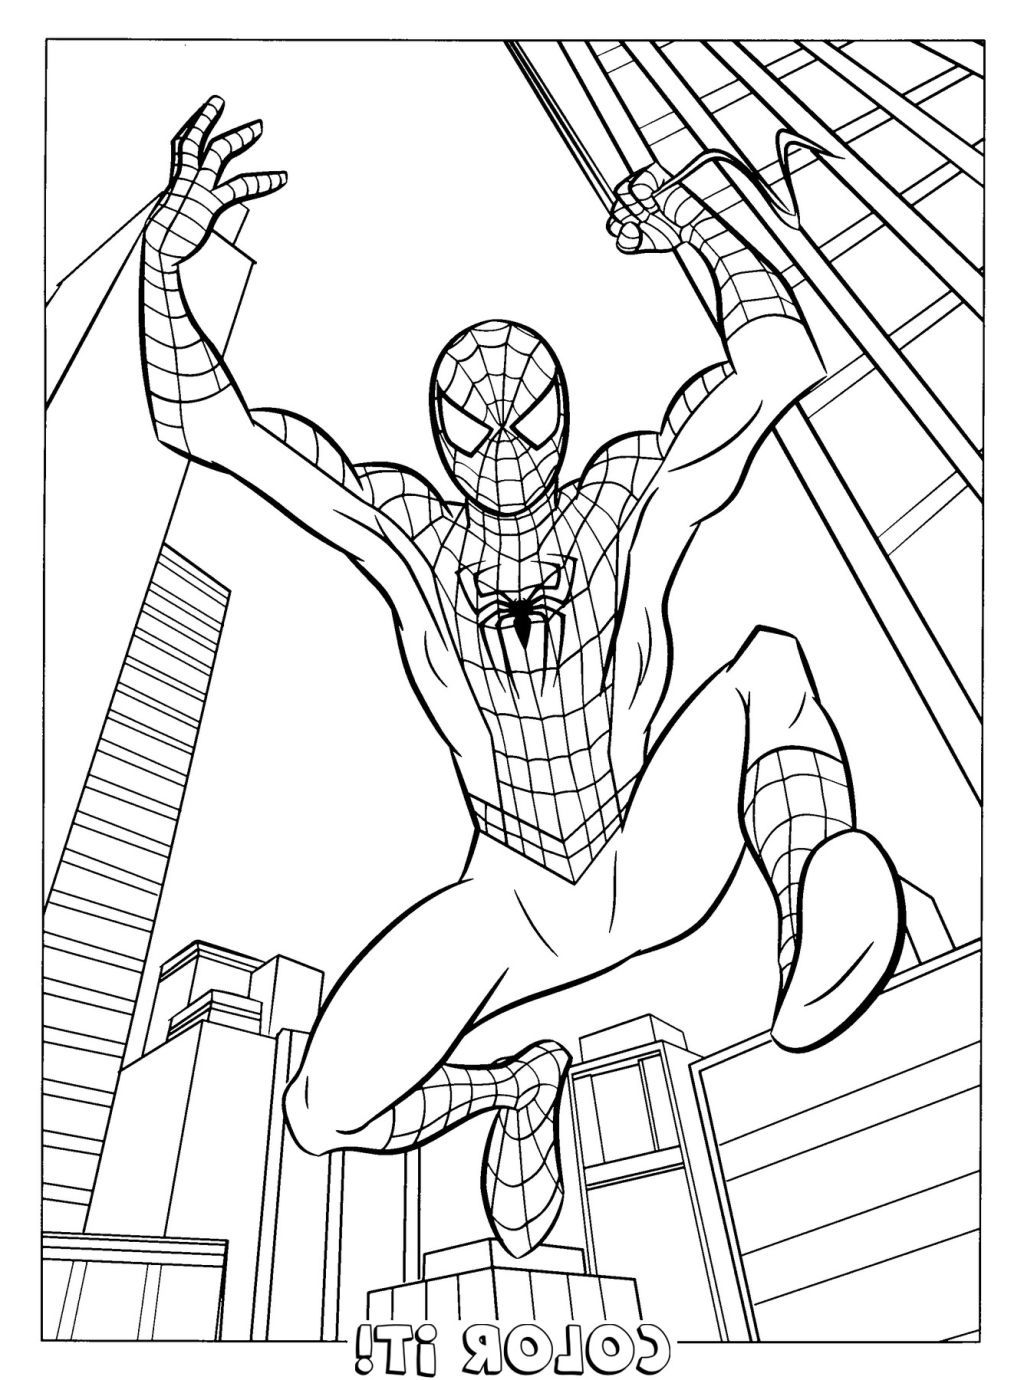 spiderman coloring book | ΖΩΓΡΑΦΙΚΗ | Pinterest | Spiderman ...